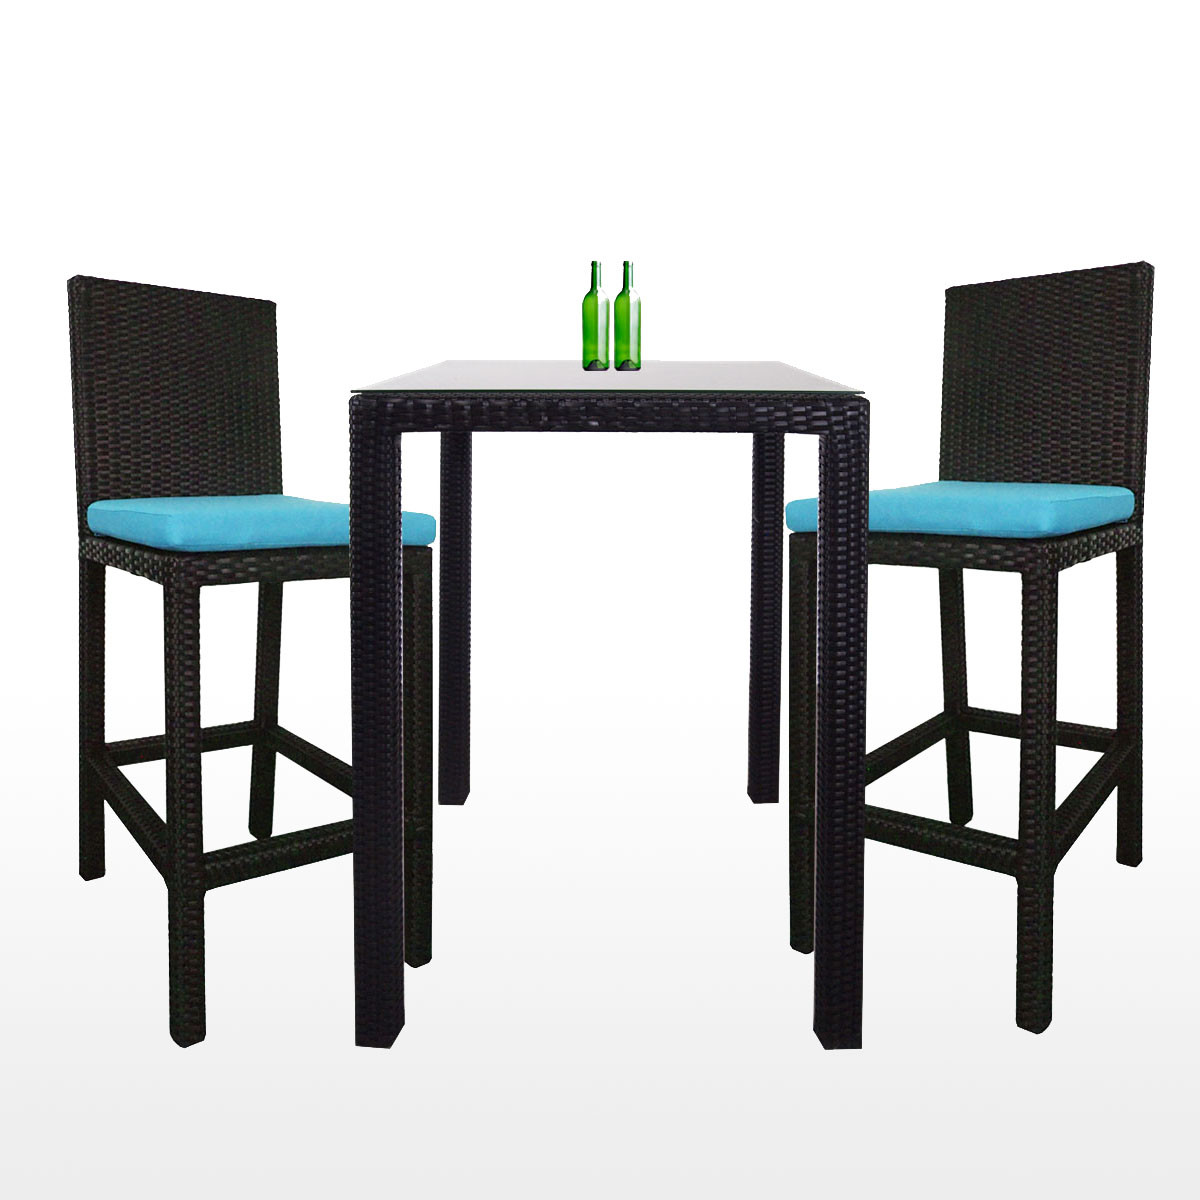 2 Chair Dining Set Two Table Decor